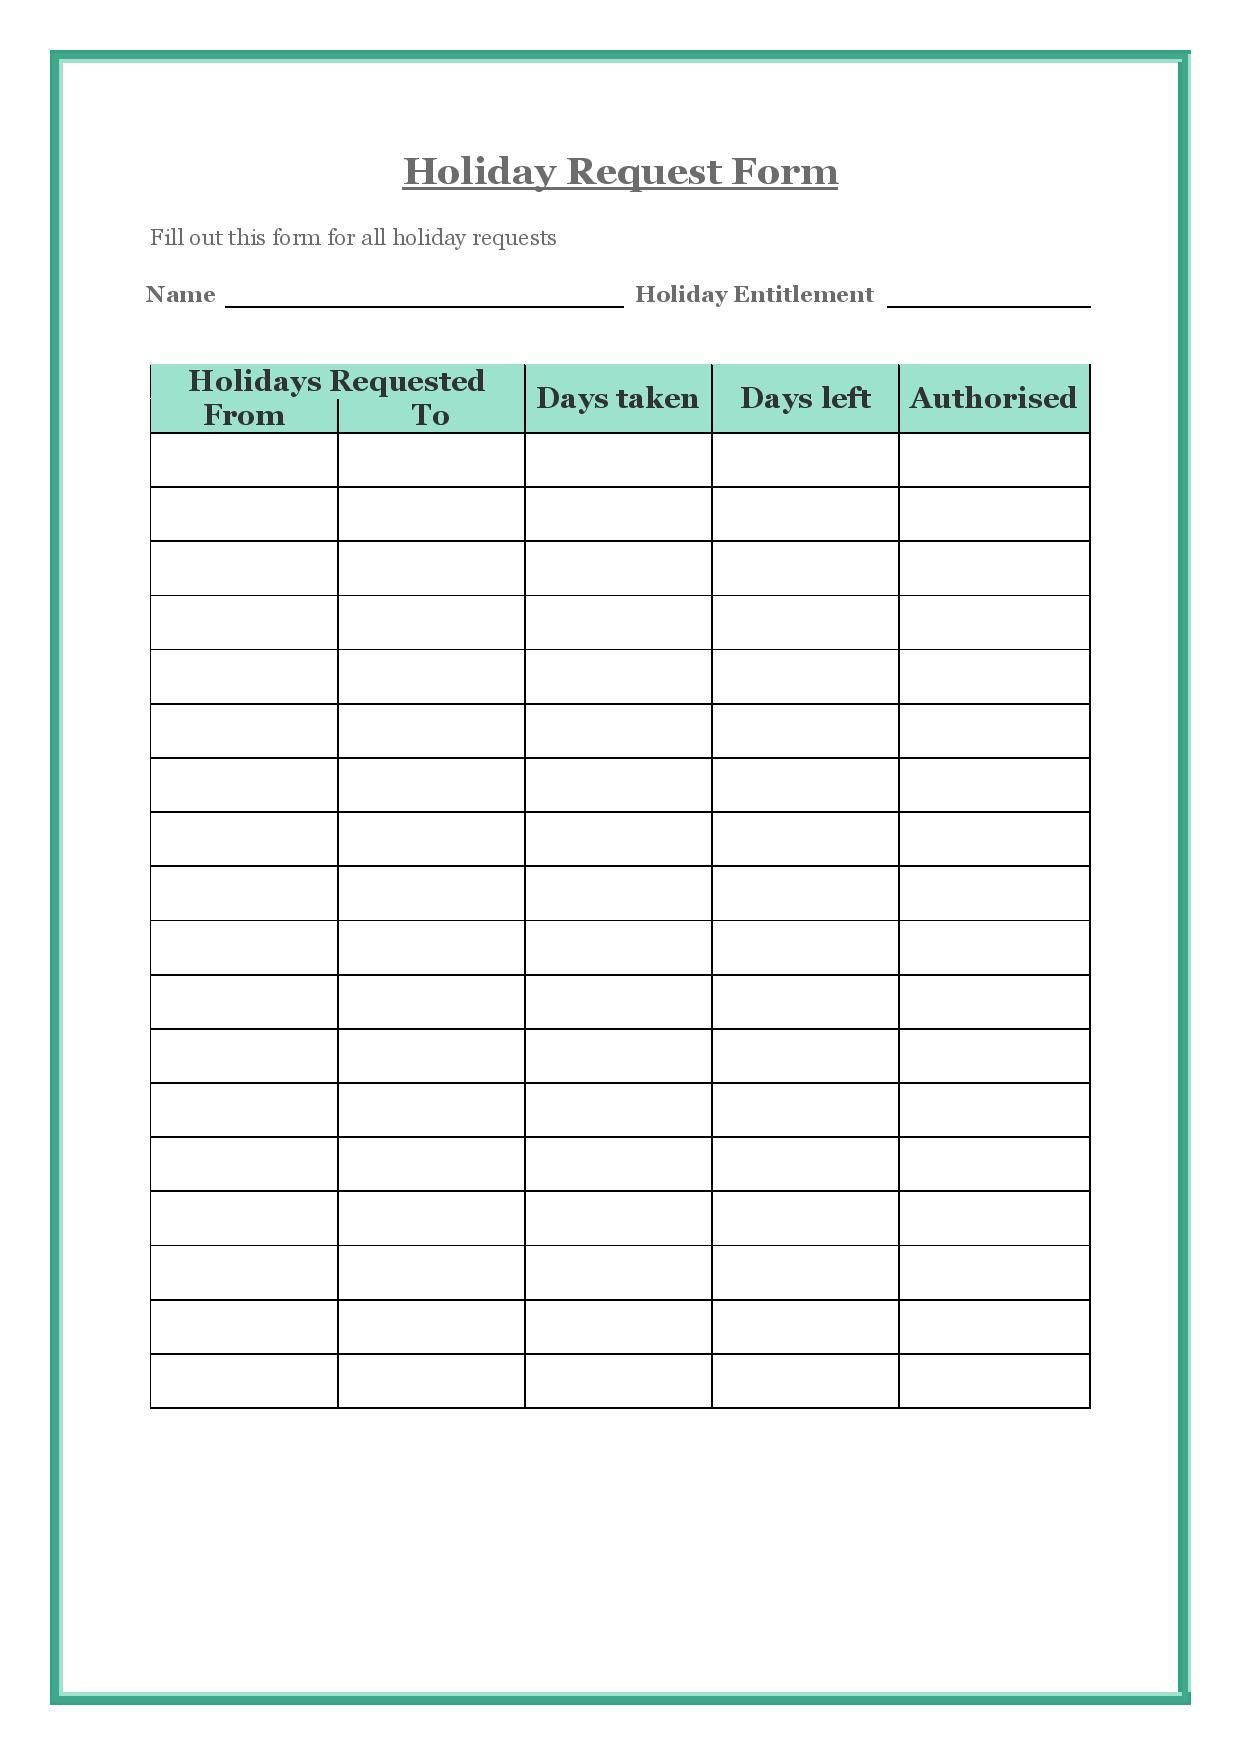 A Virtual Assistant Can Create A Holiday Request Form For Your